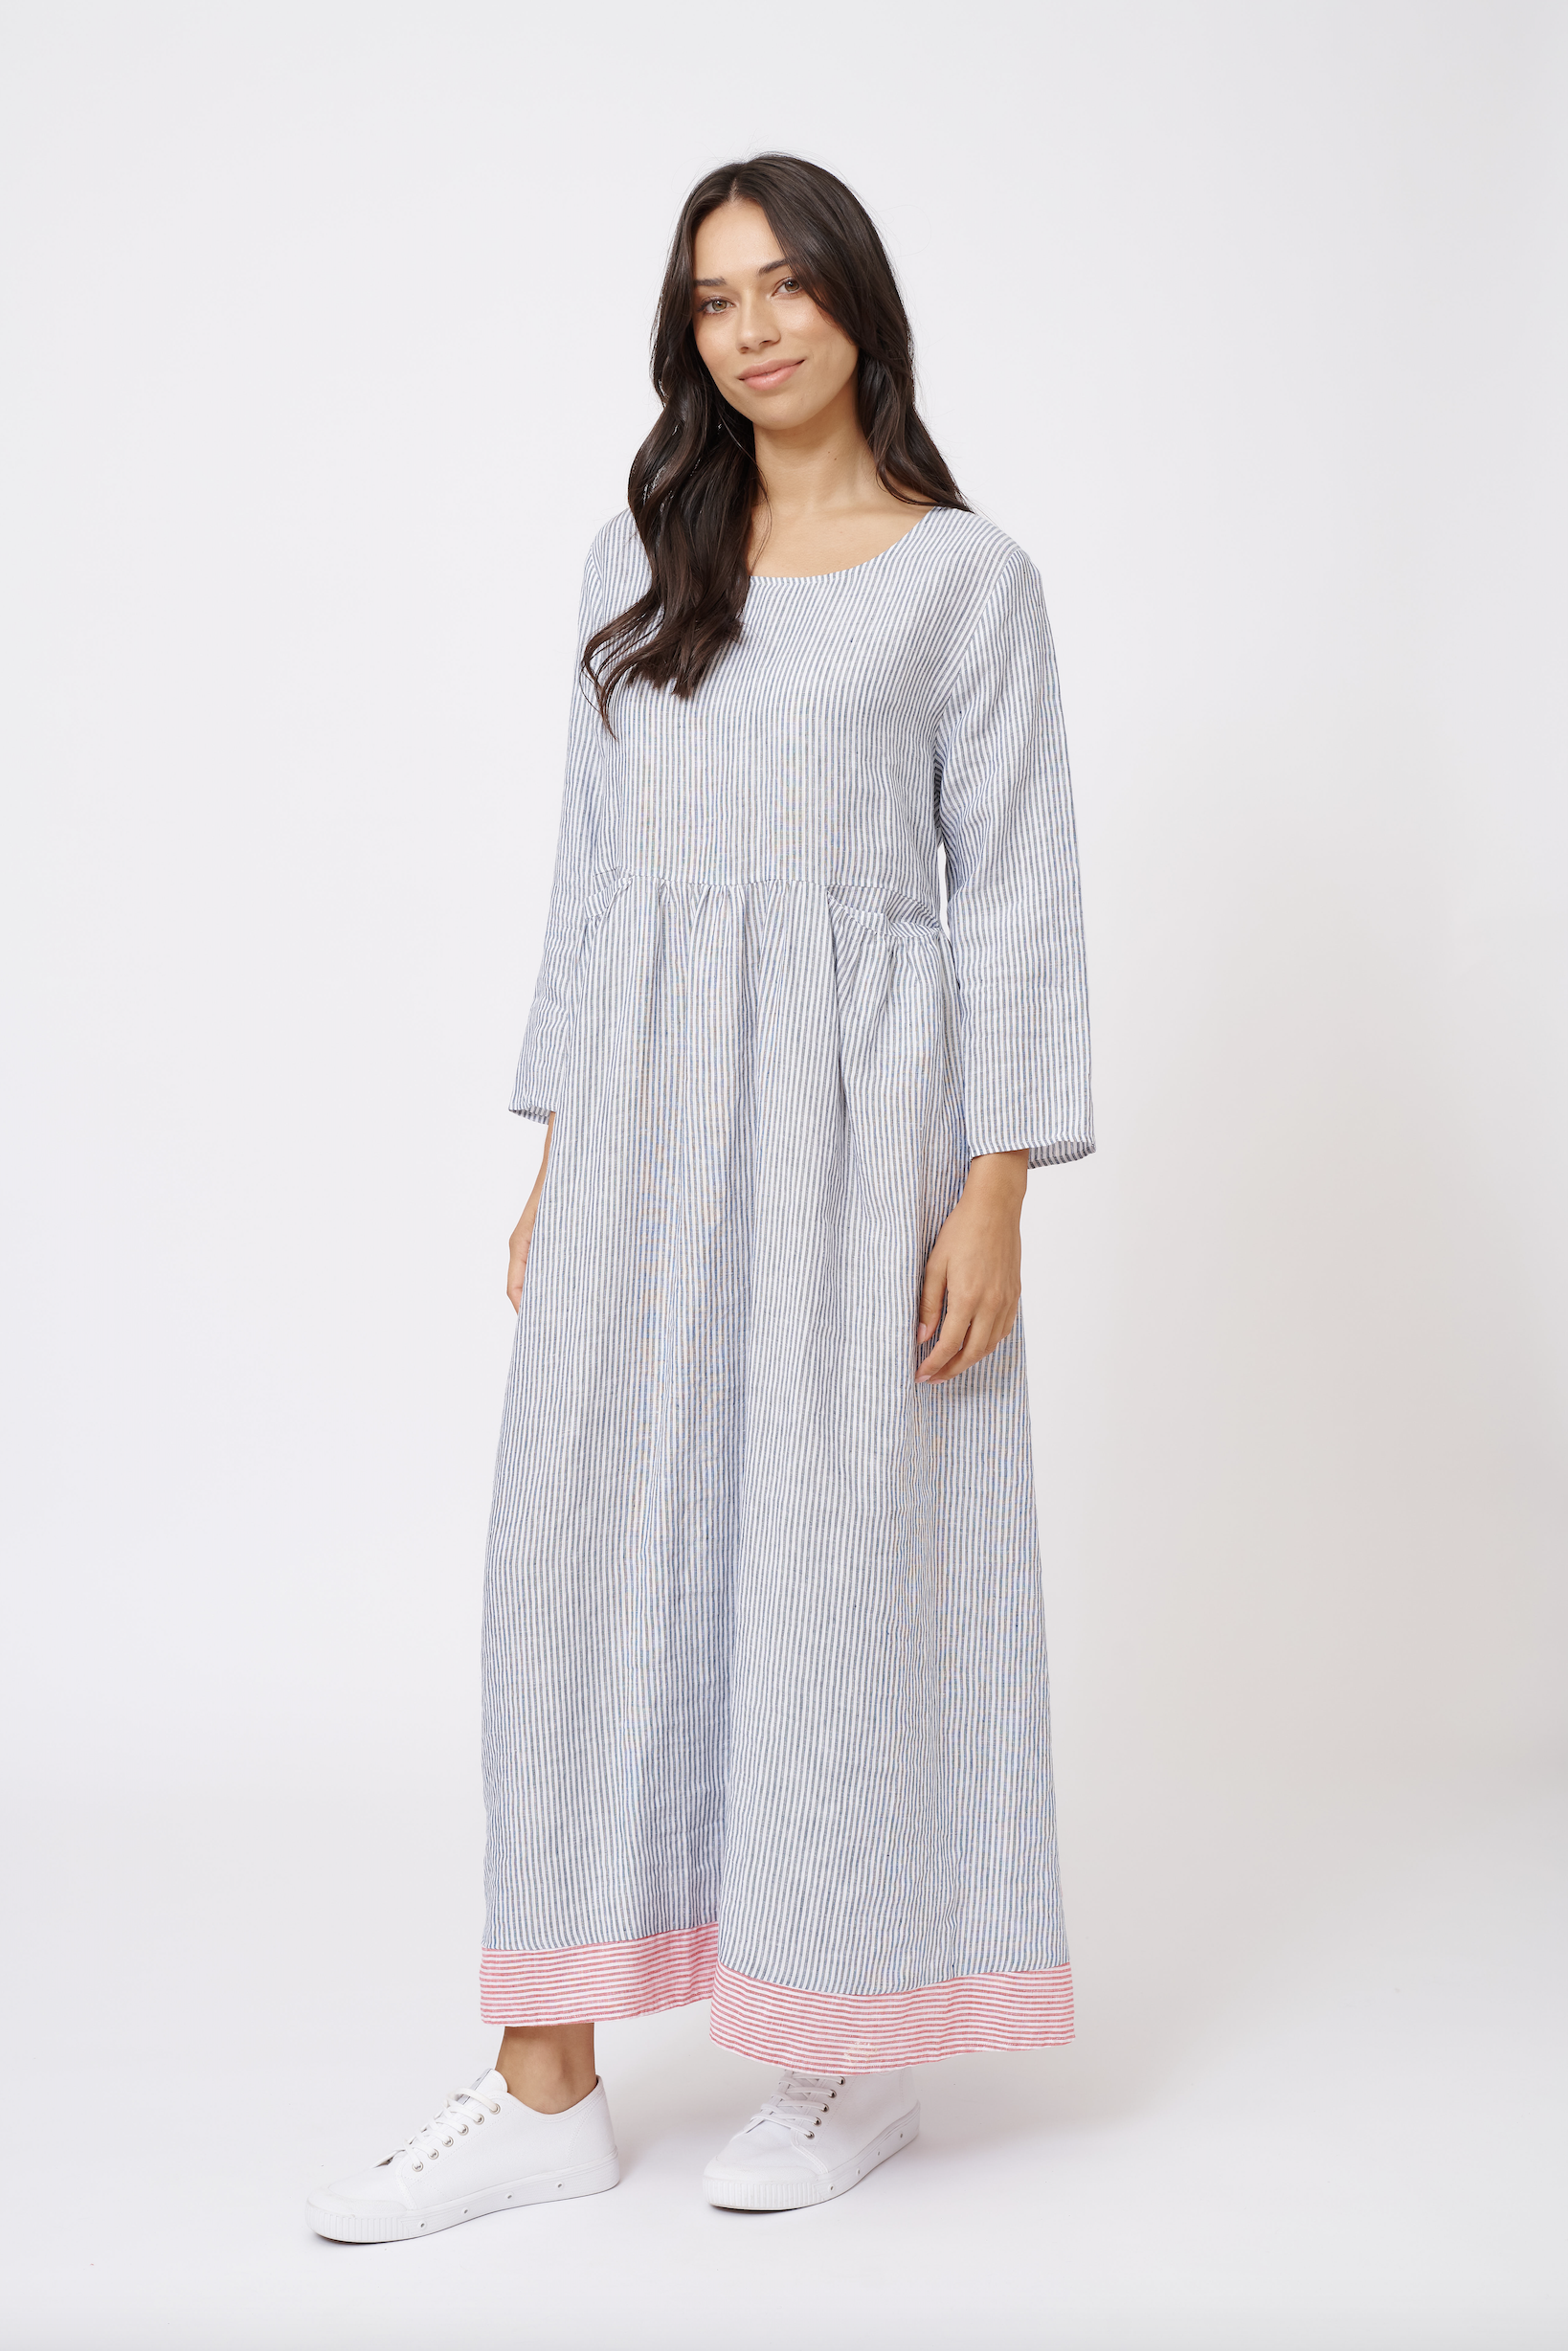 JESS LINEN DRESS IN NAVY STRIPE